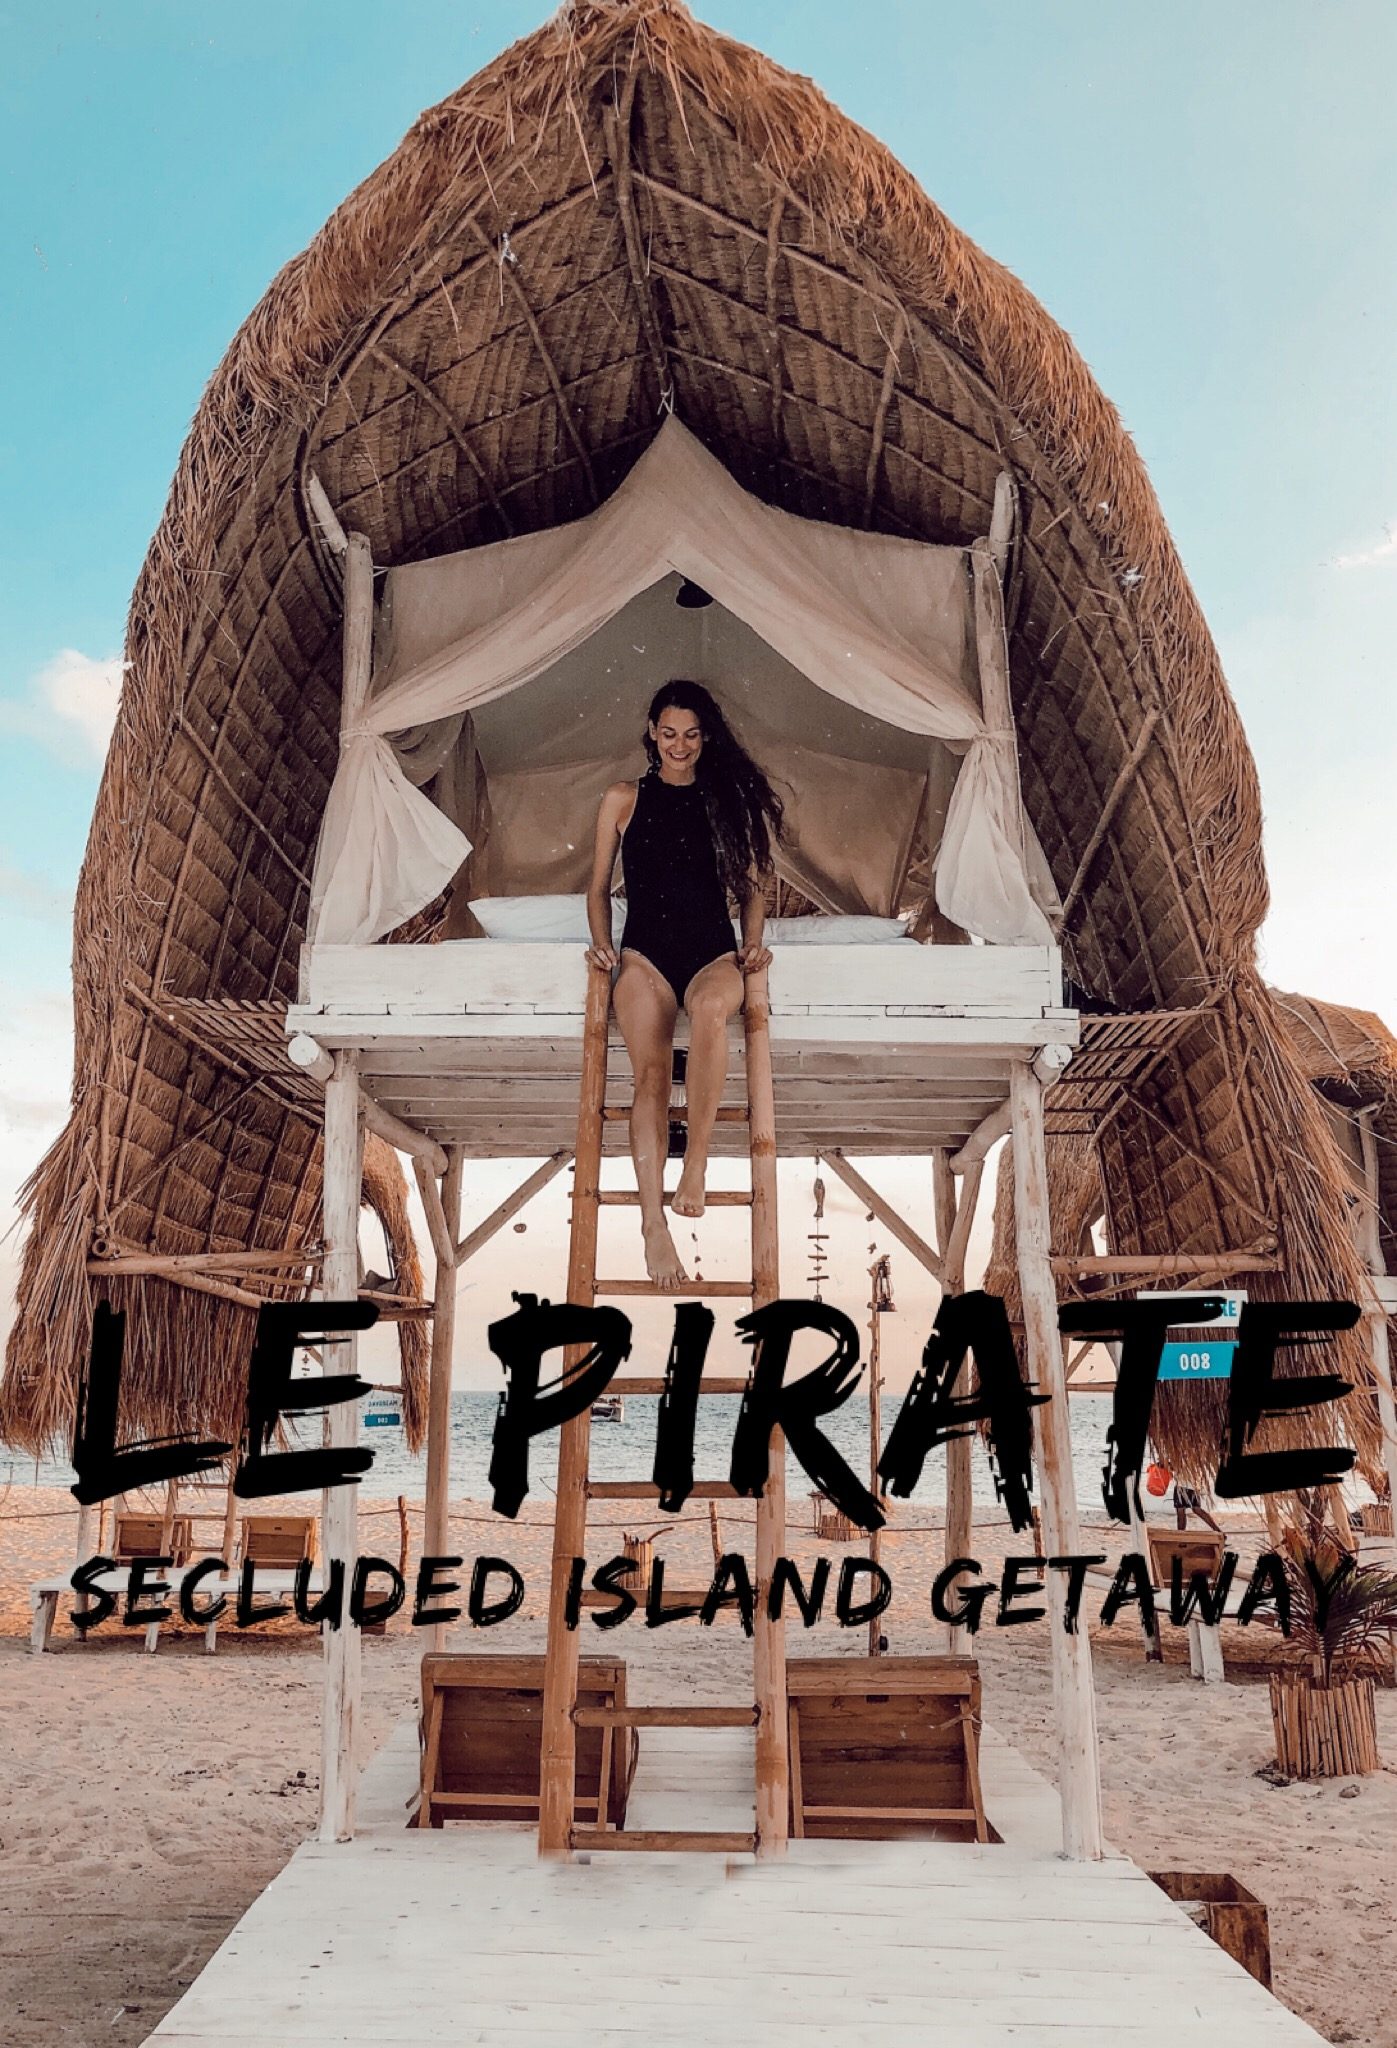 Le Pirate Secluded Island Getaway Sticks To City Slicks